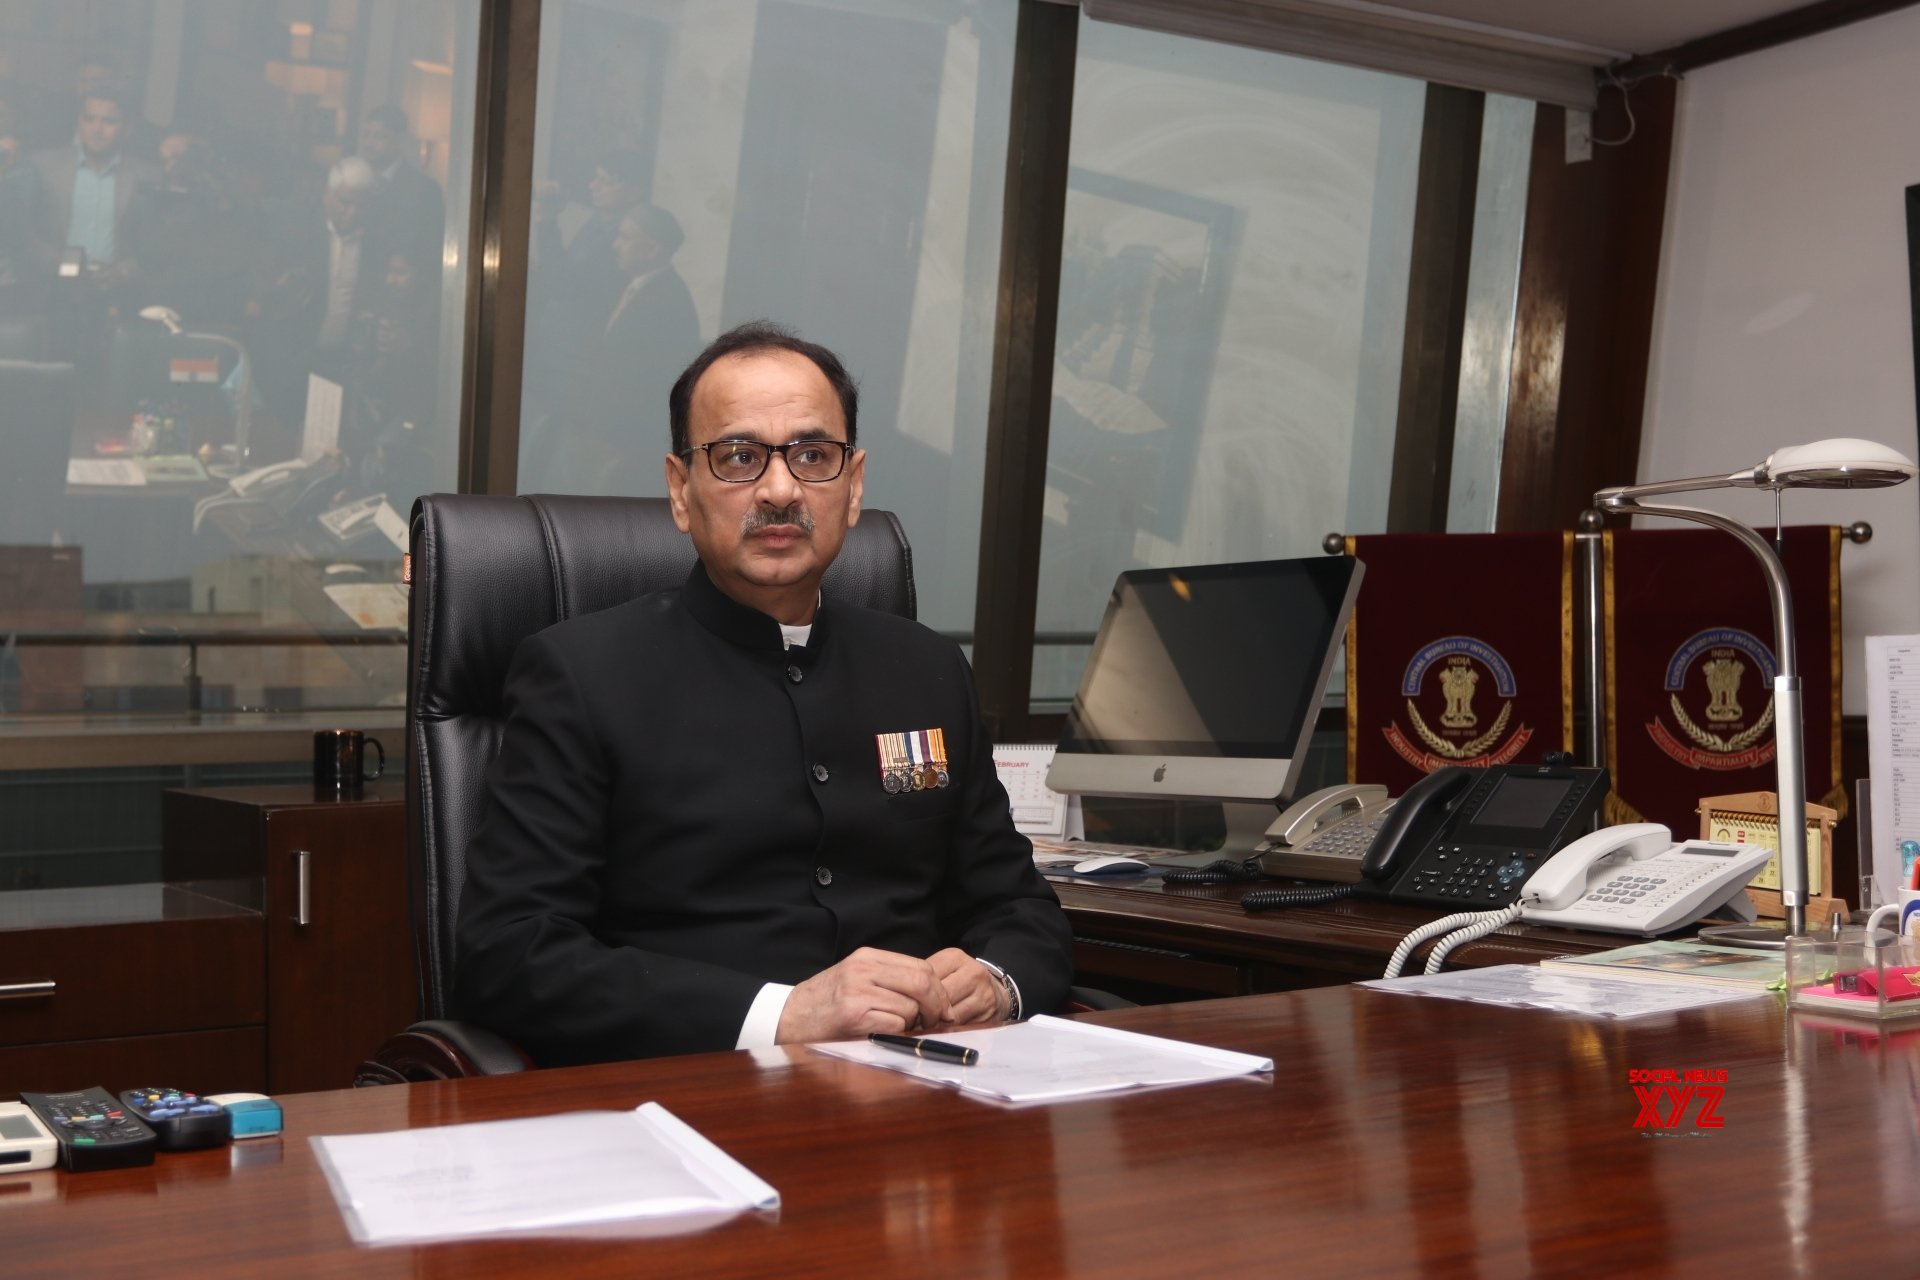 Former CBI Chief Alok Verma added to Pegasus list after being sacked